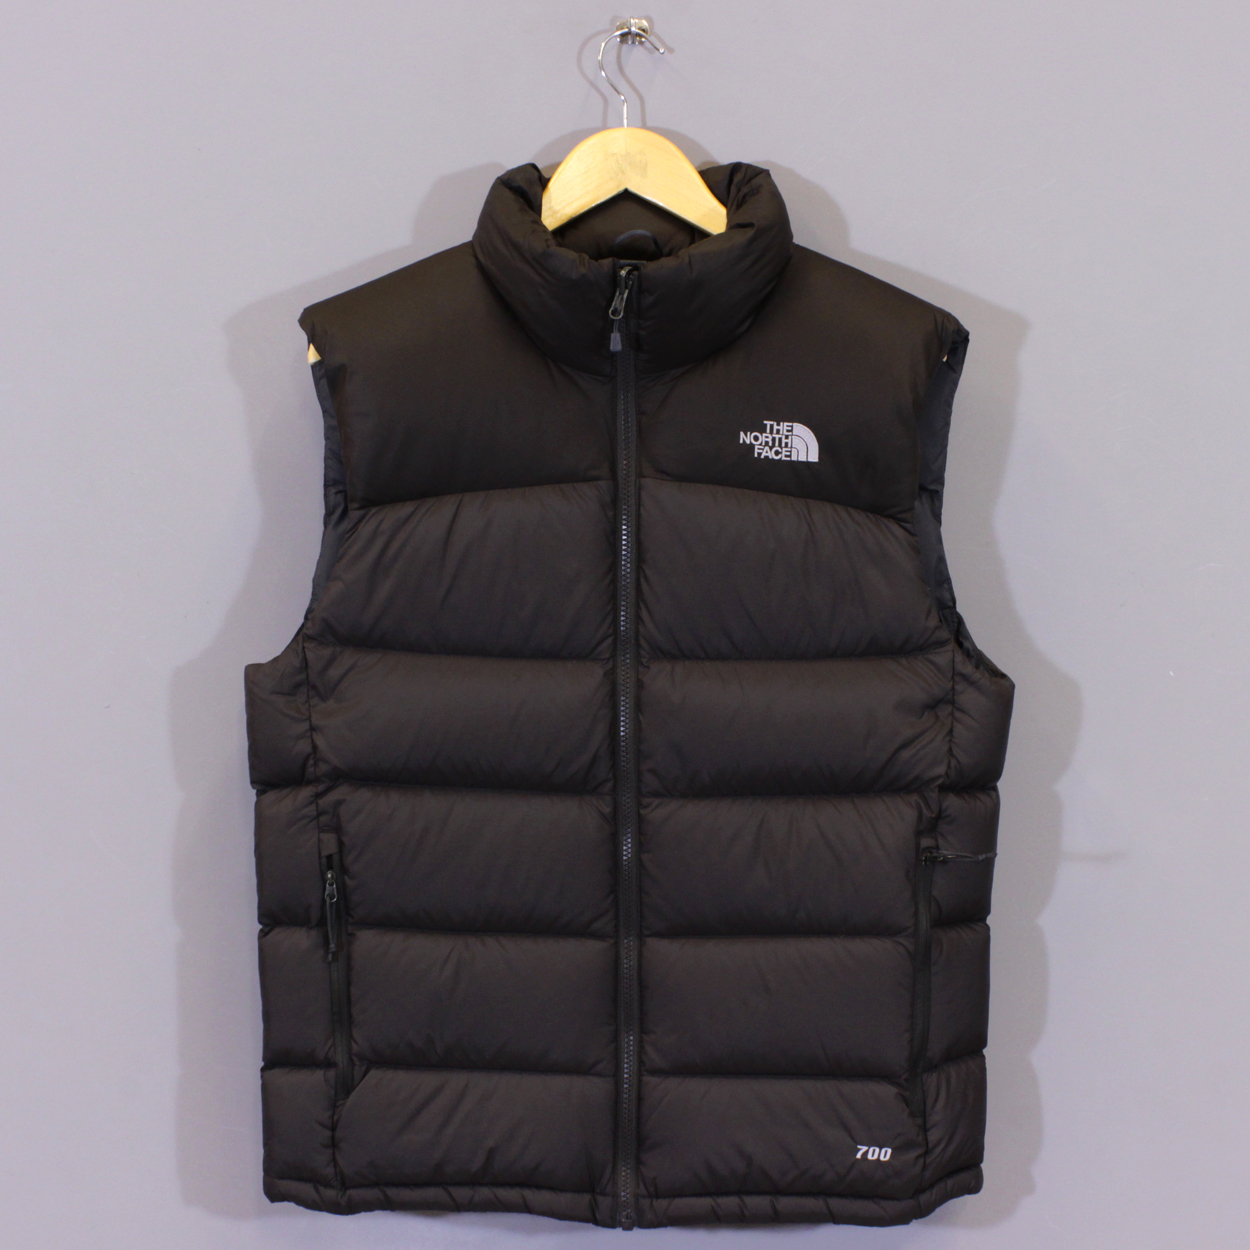 Find great deals on eBay for mens body warmers. Shop with confidence. Skip to main content. eBay: New Listing North Face mens brown goose down body warmer vest sz L puffer euc. Pre-Owned. $ Buy It Now +$ shipping. Mens Body Warmer Waistcoat Safari .